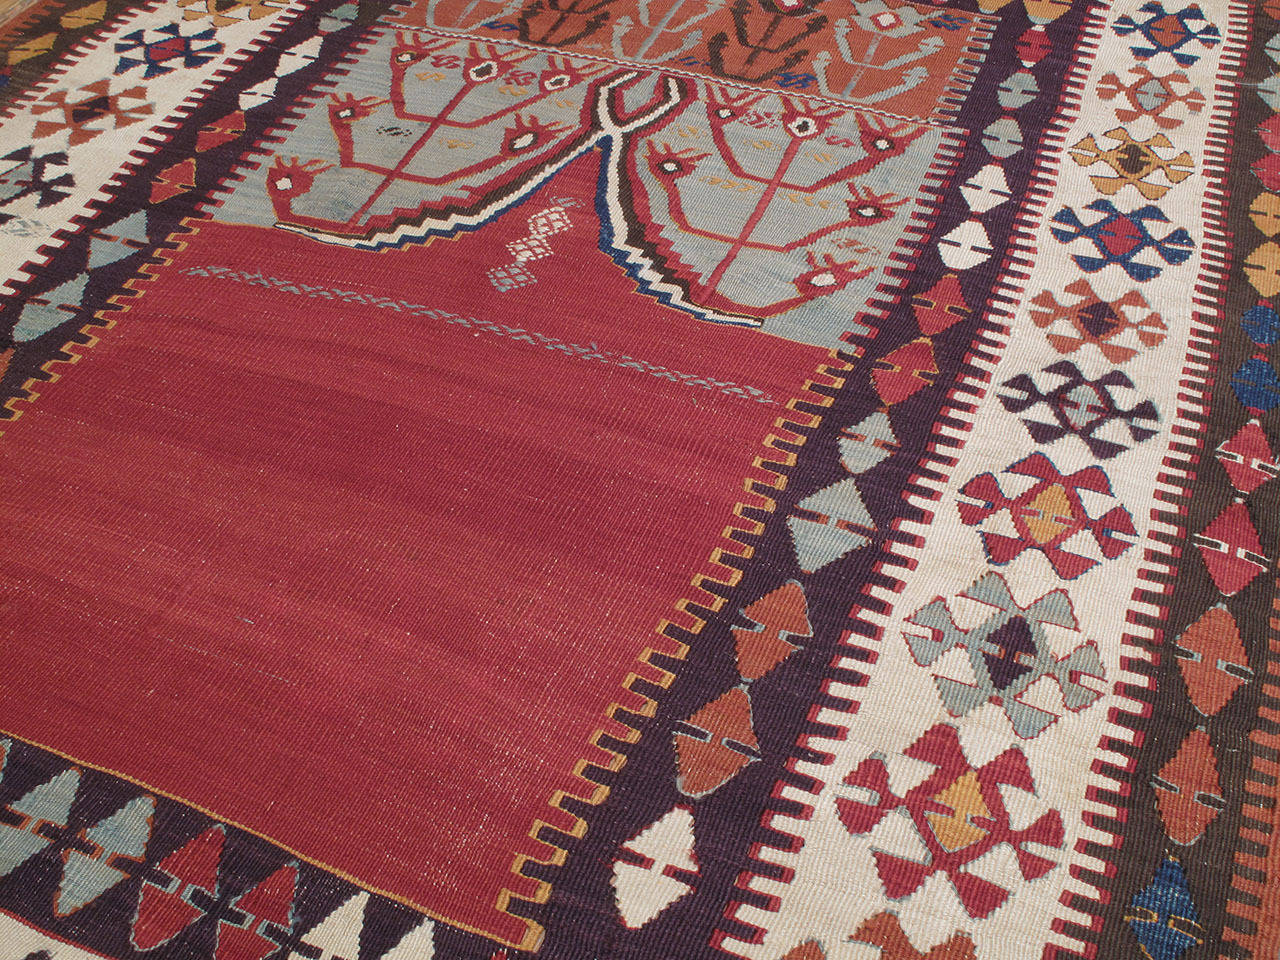 Hand-Woven Antique Central Anatolian Kilim with